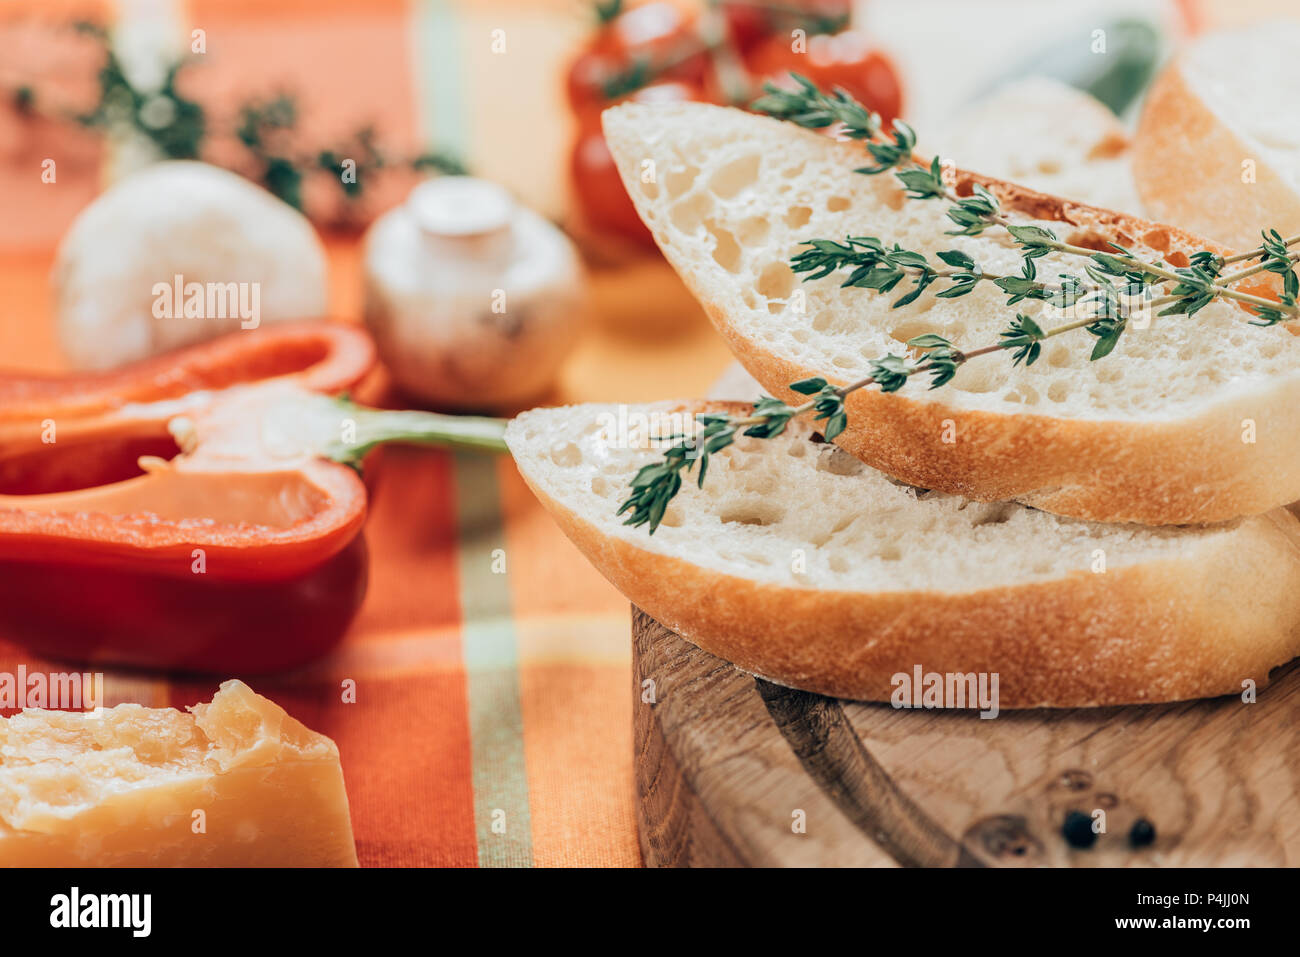 close-up view of fresh sliced baguette on wooden cutting board and parmesan cheese with bell pepper and mushrooms on table - Stock Image